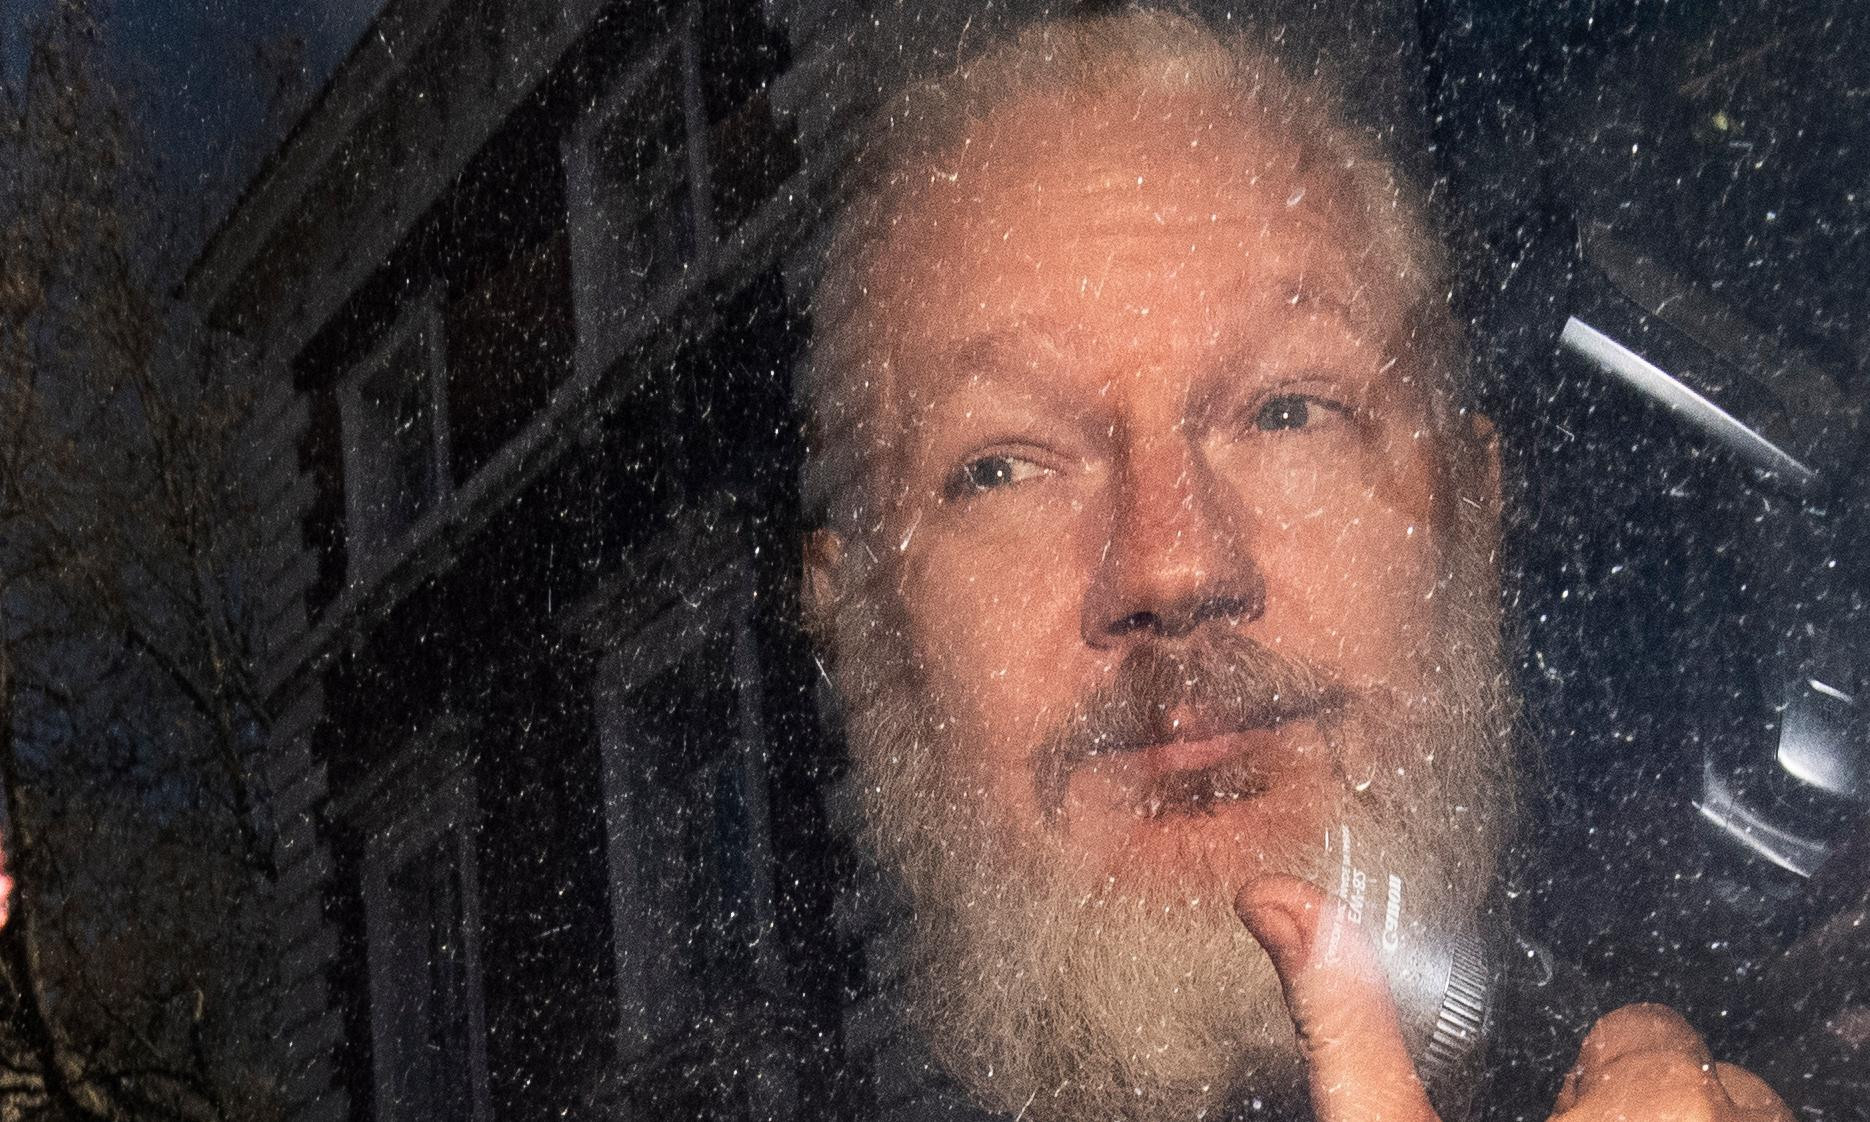 I love stories of badly-behaved houseguests – and Julian Assange has raised the bar